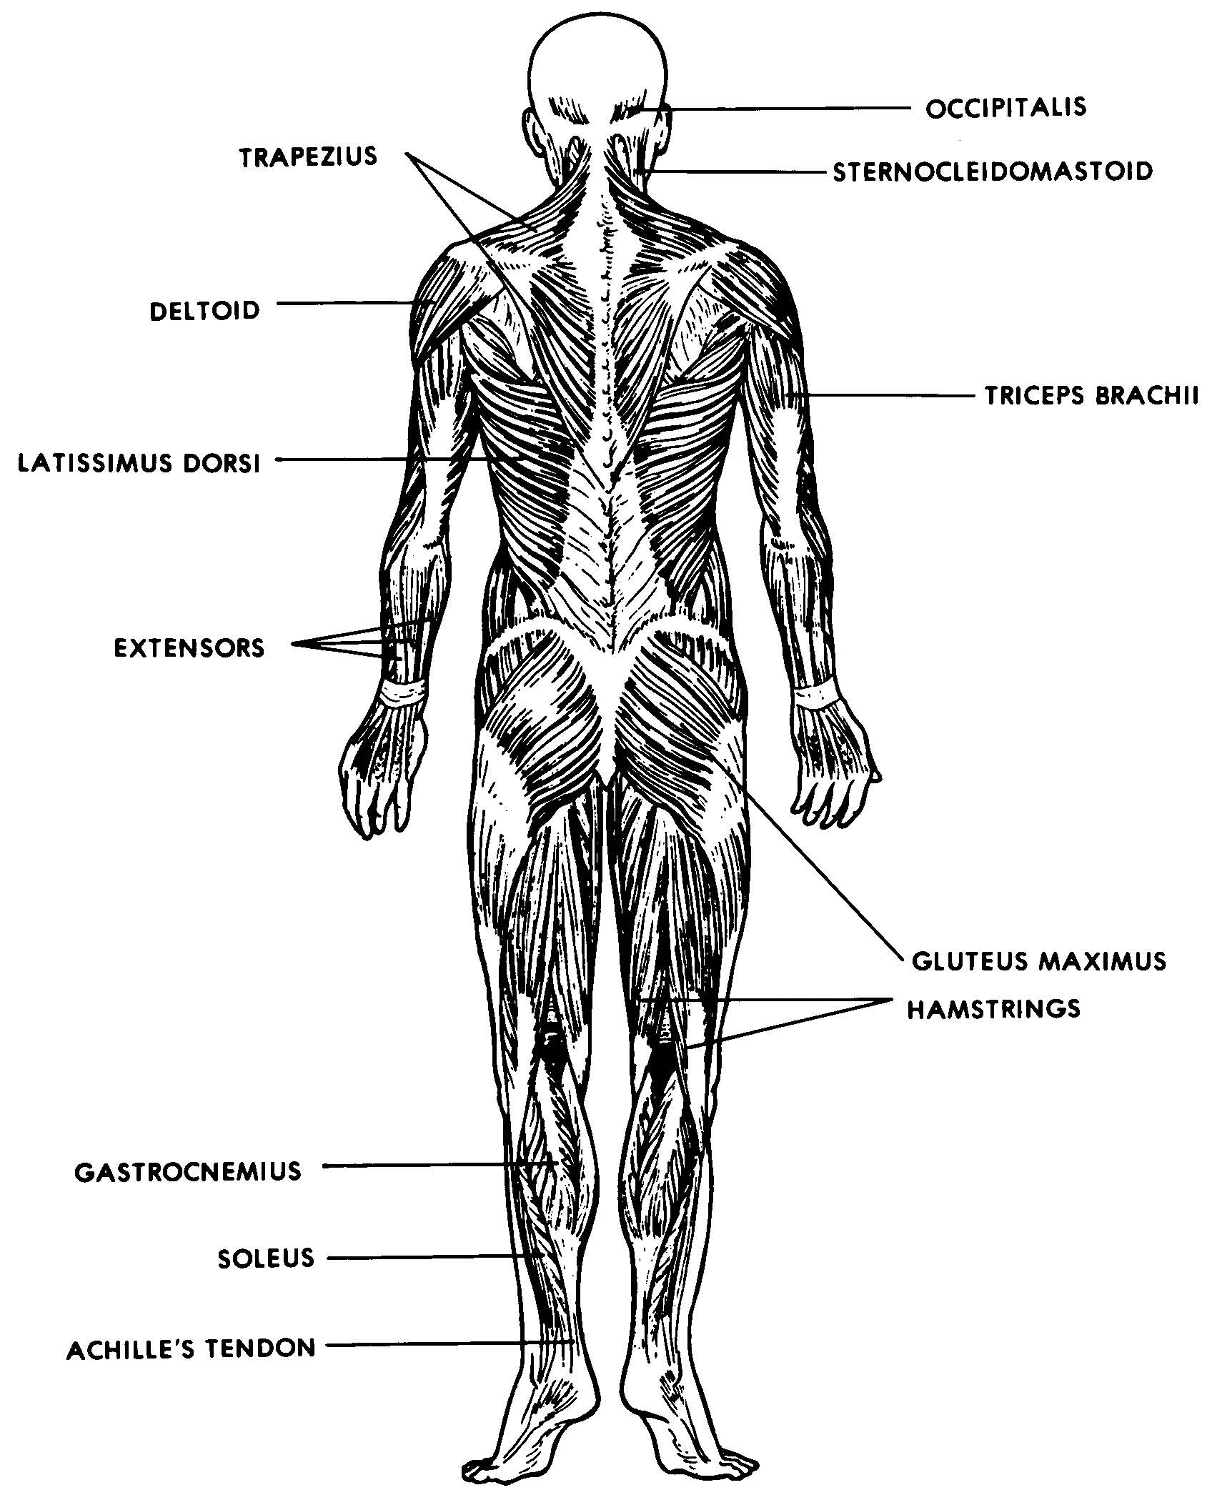 major muscle diagram to label yankee stadium seating the muscular system lesson 0386 tqa explorer